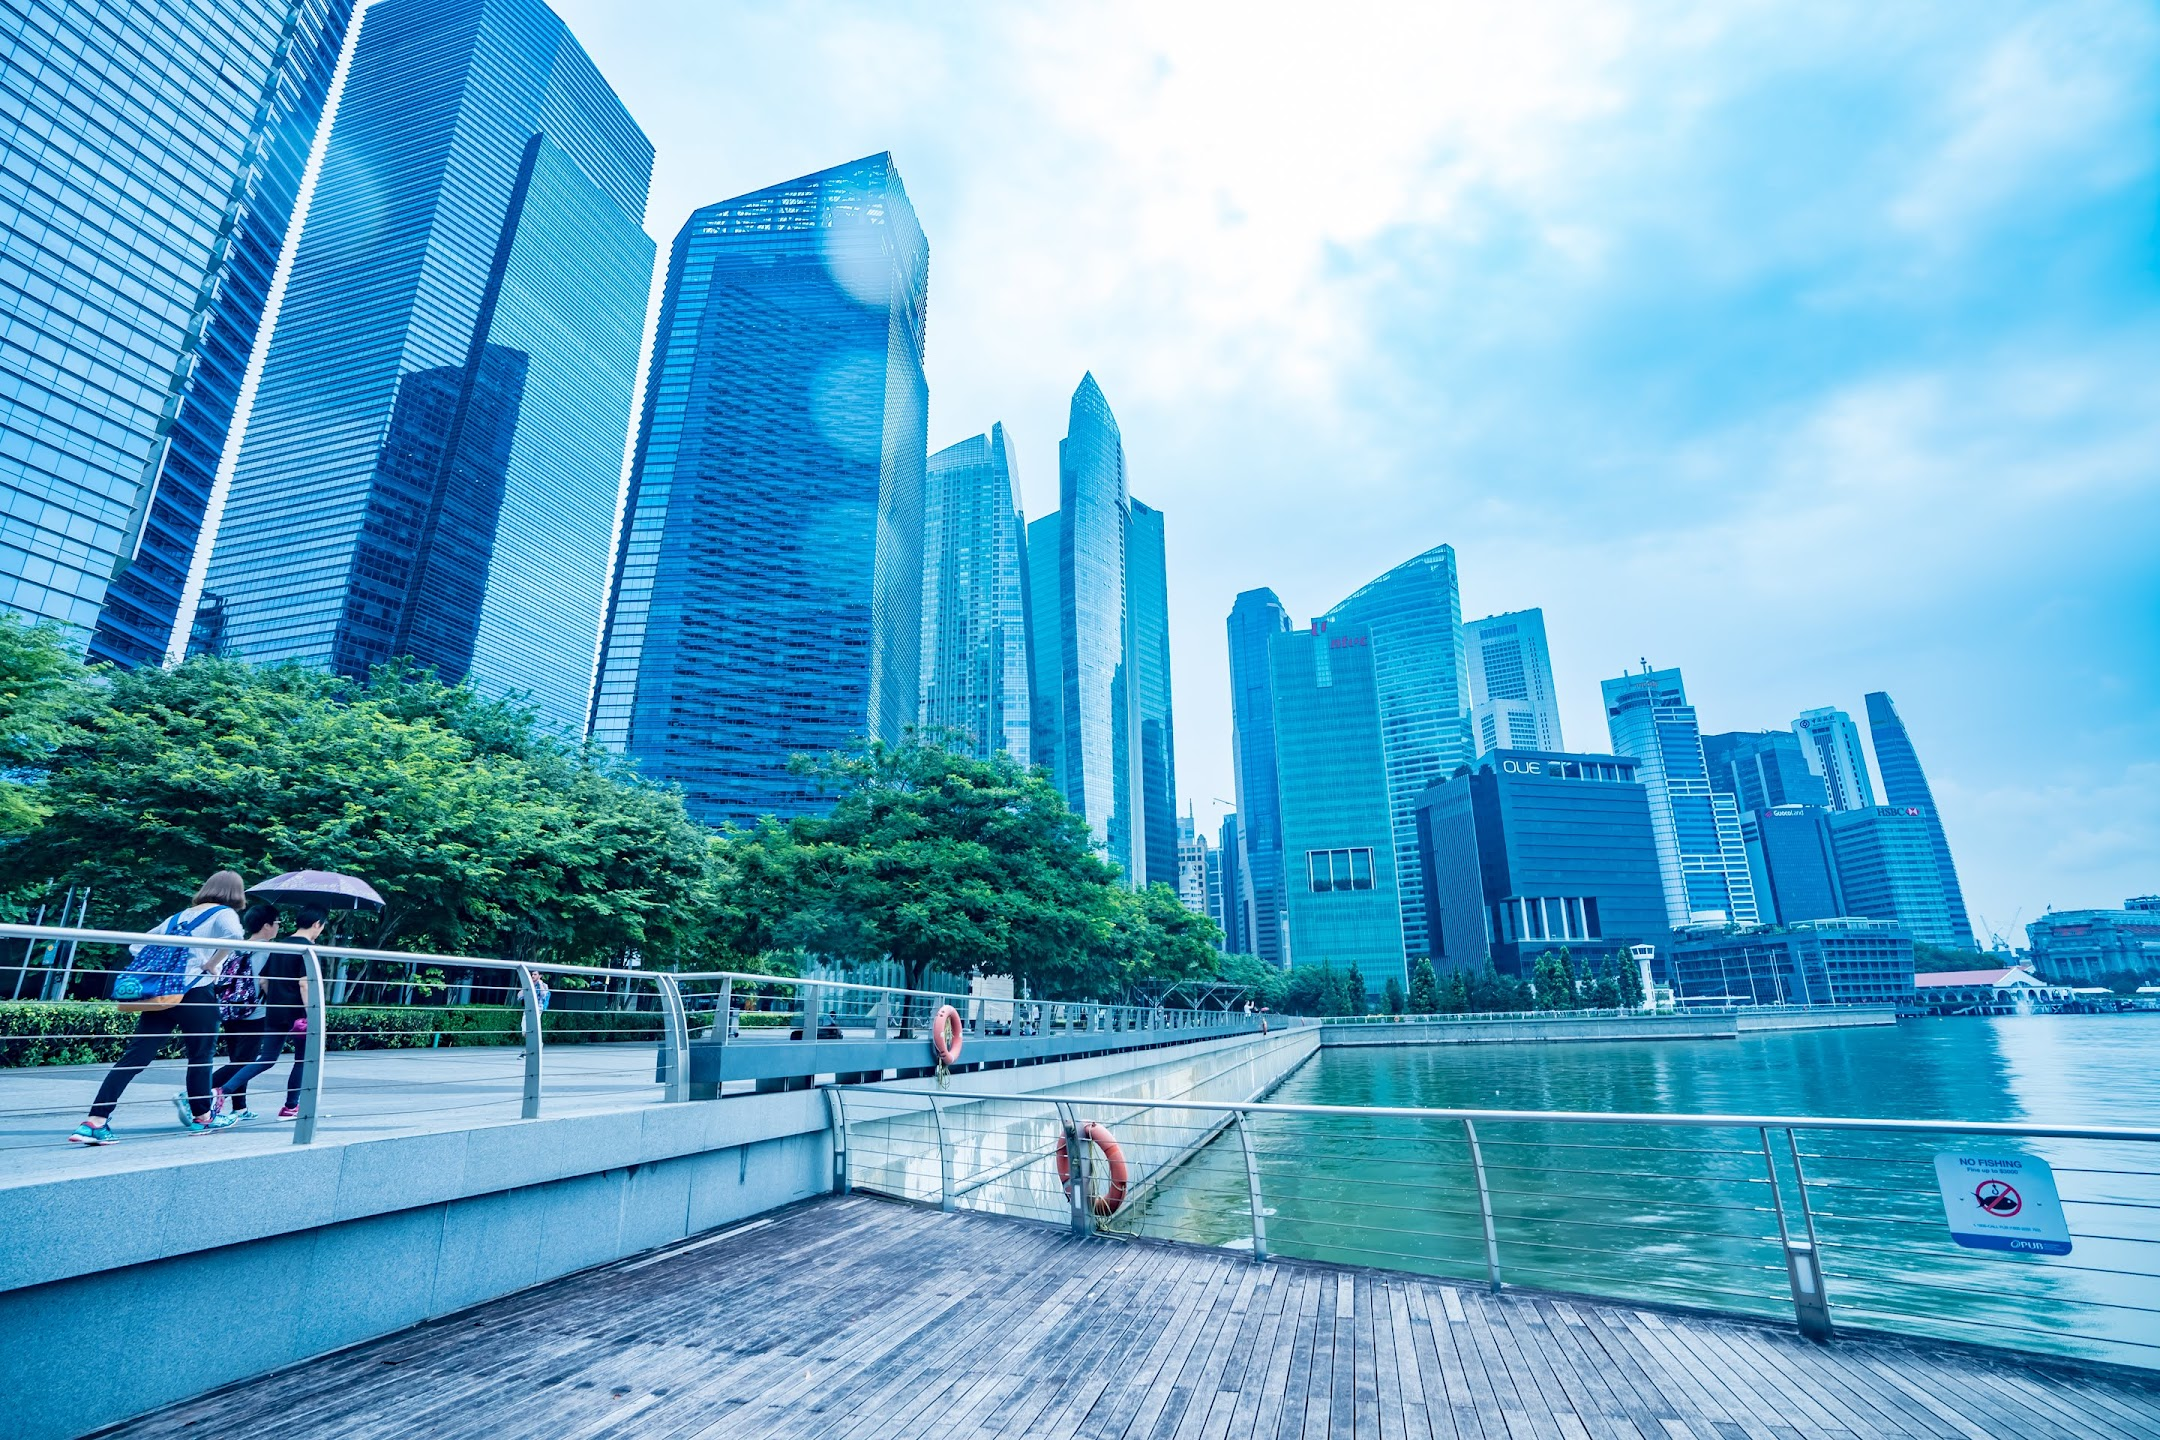 シンガポール Marina Bay Waterfront Promenade2